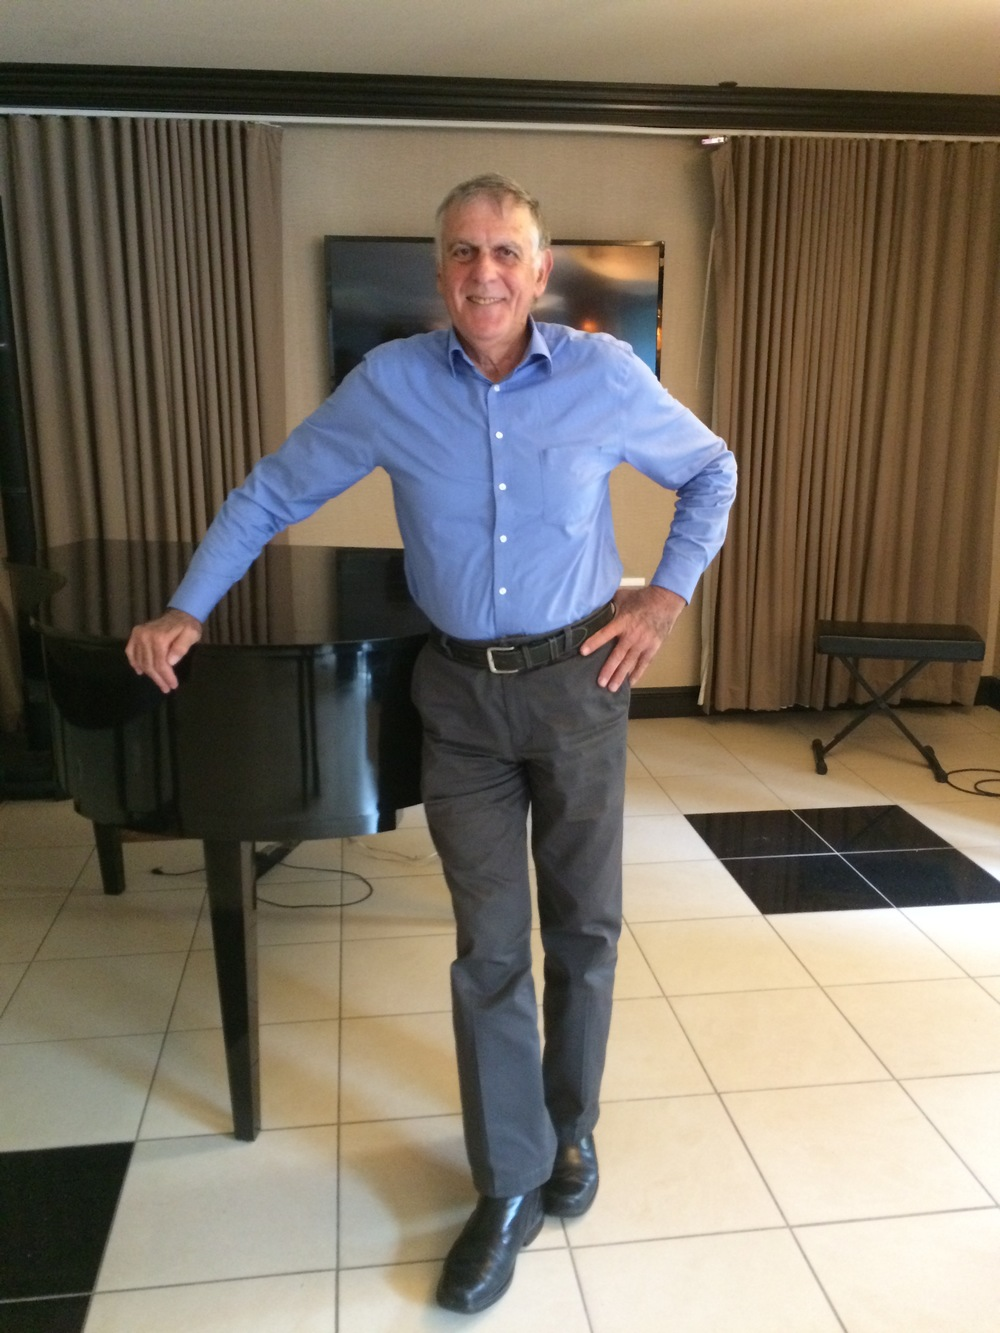 Click photo to download. Caption: On Oct. 19, 2014, Israeli Nobel Prize winner in chemistry Dan Shechtman is pictured in the lobby of the Hilton Orrington/Evanston hotel near Chicago, where he met for an interview with JNS.org. Credit: Alina Dain Sharon.